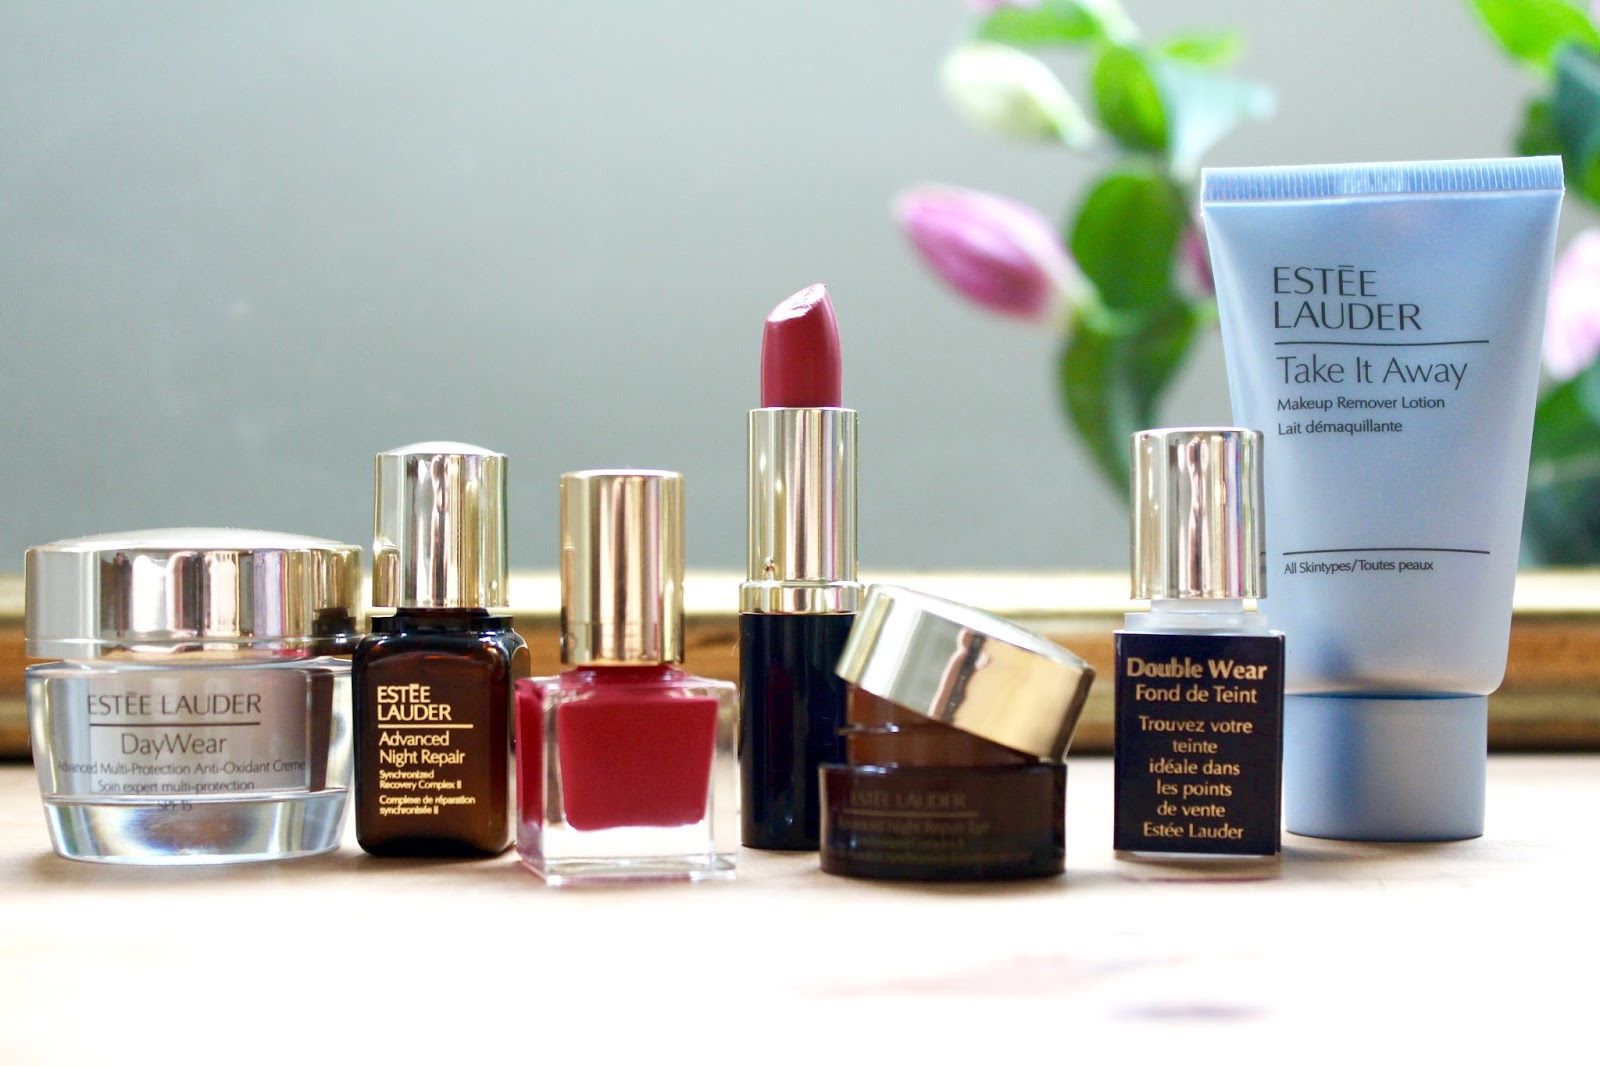 Estée Lauder Gift With Purchase at Debenhams